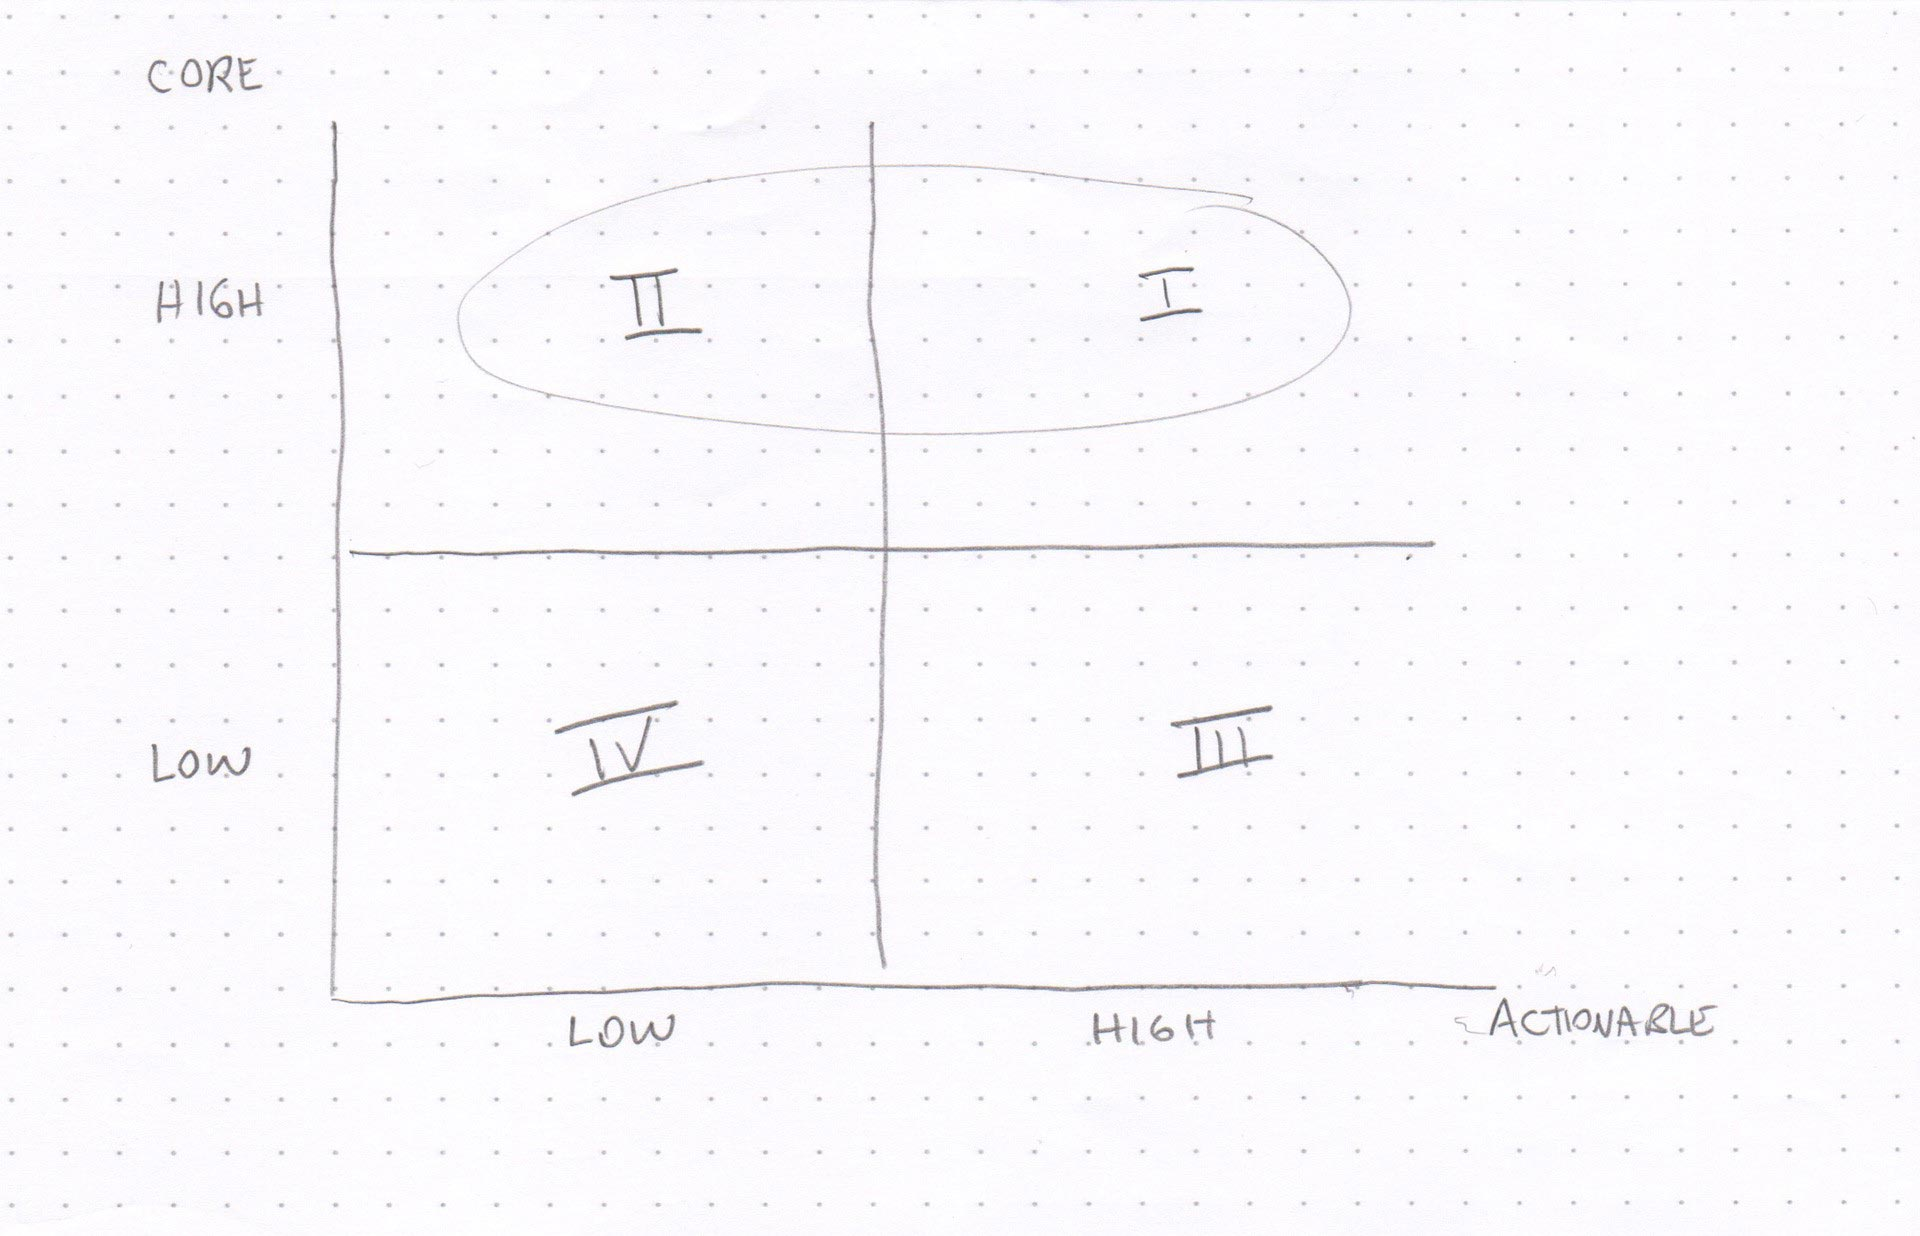 Core vs. Actionable metrics chart showing Core metrics in quadrants I and II